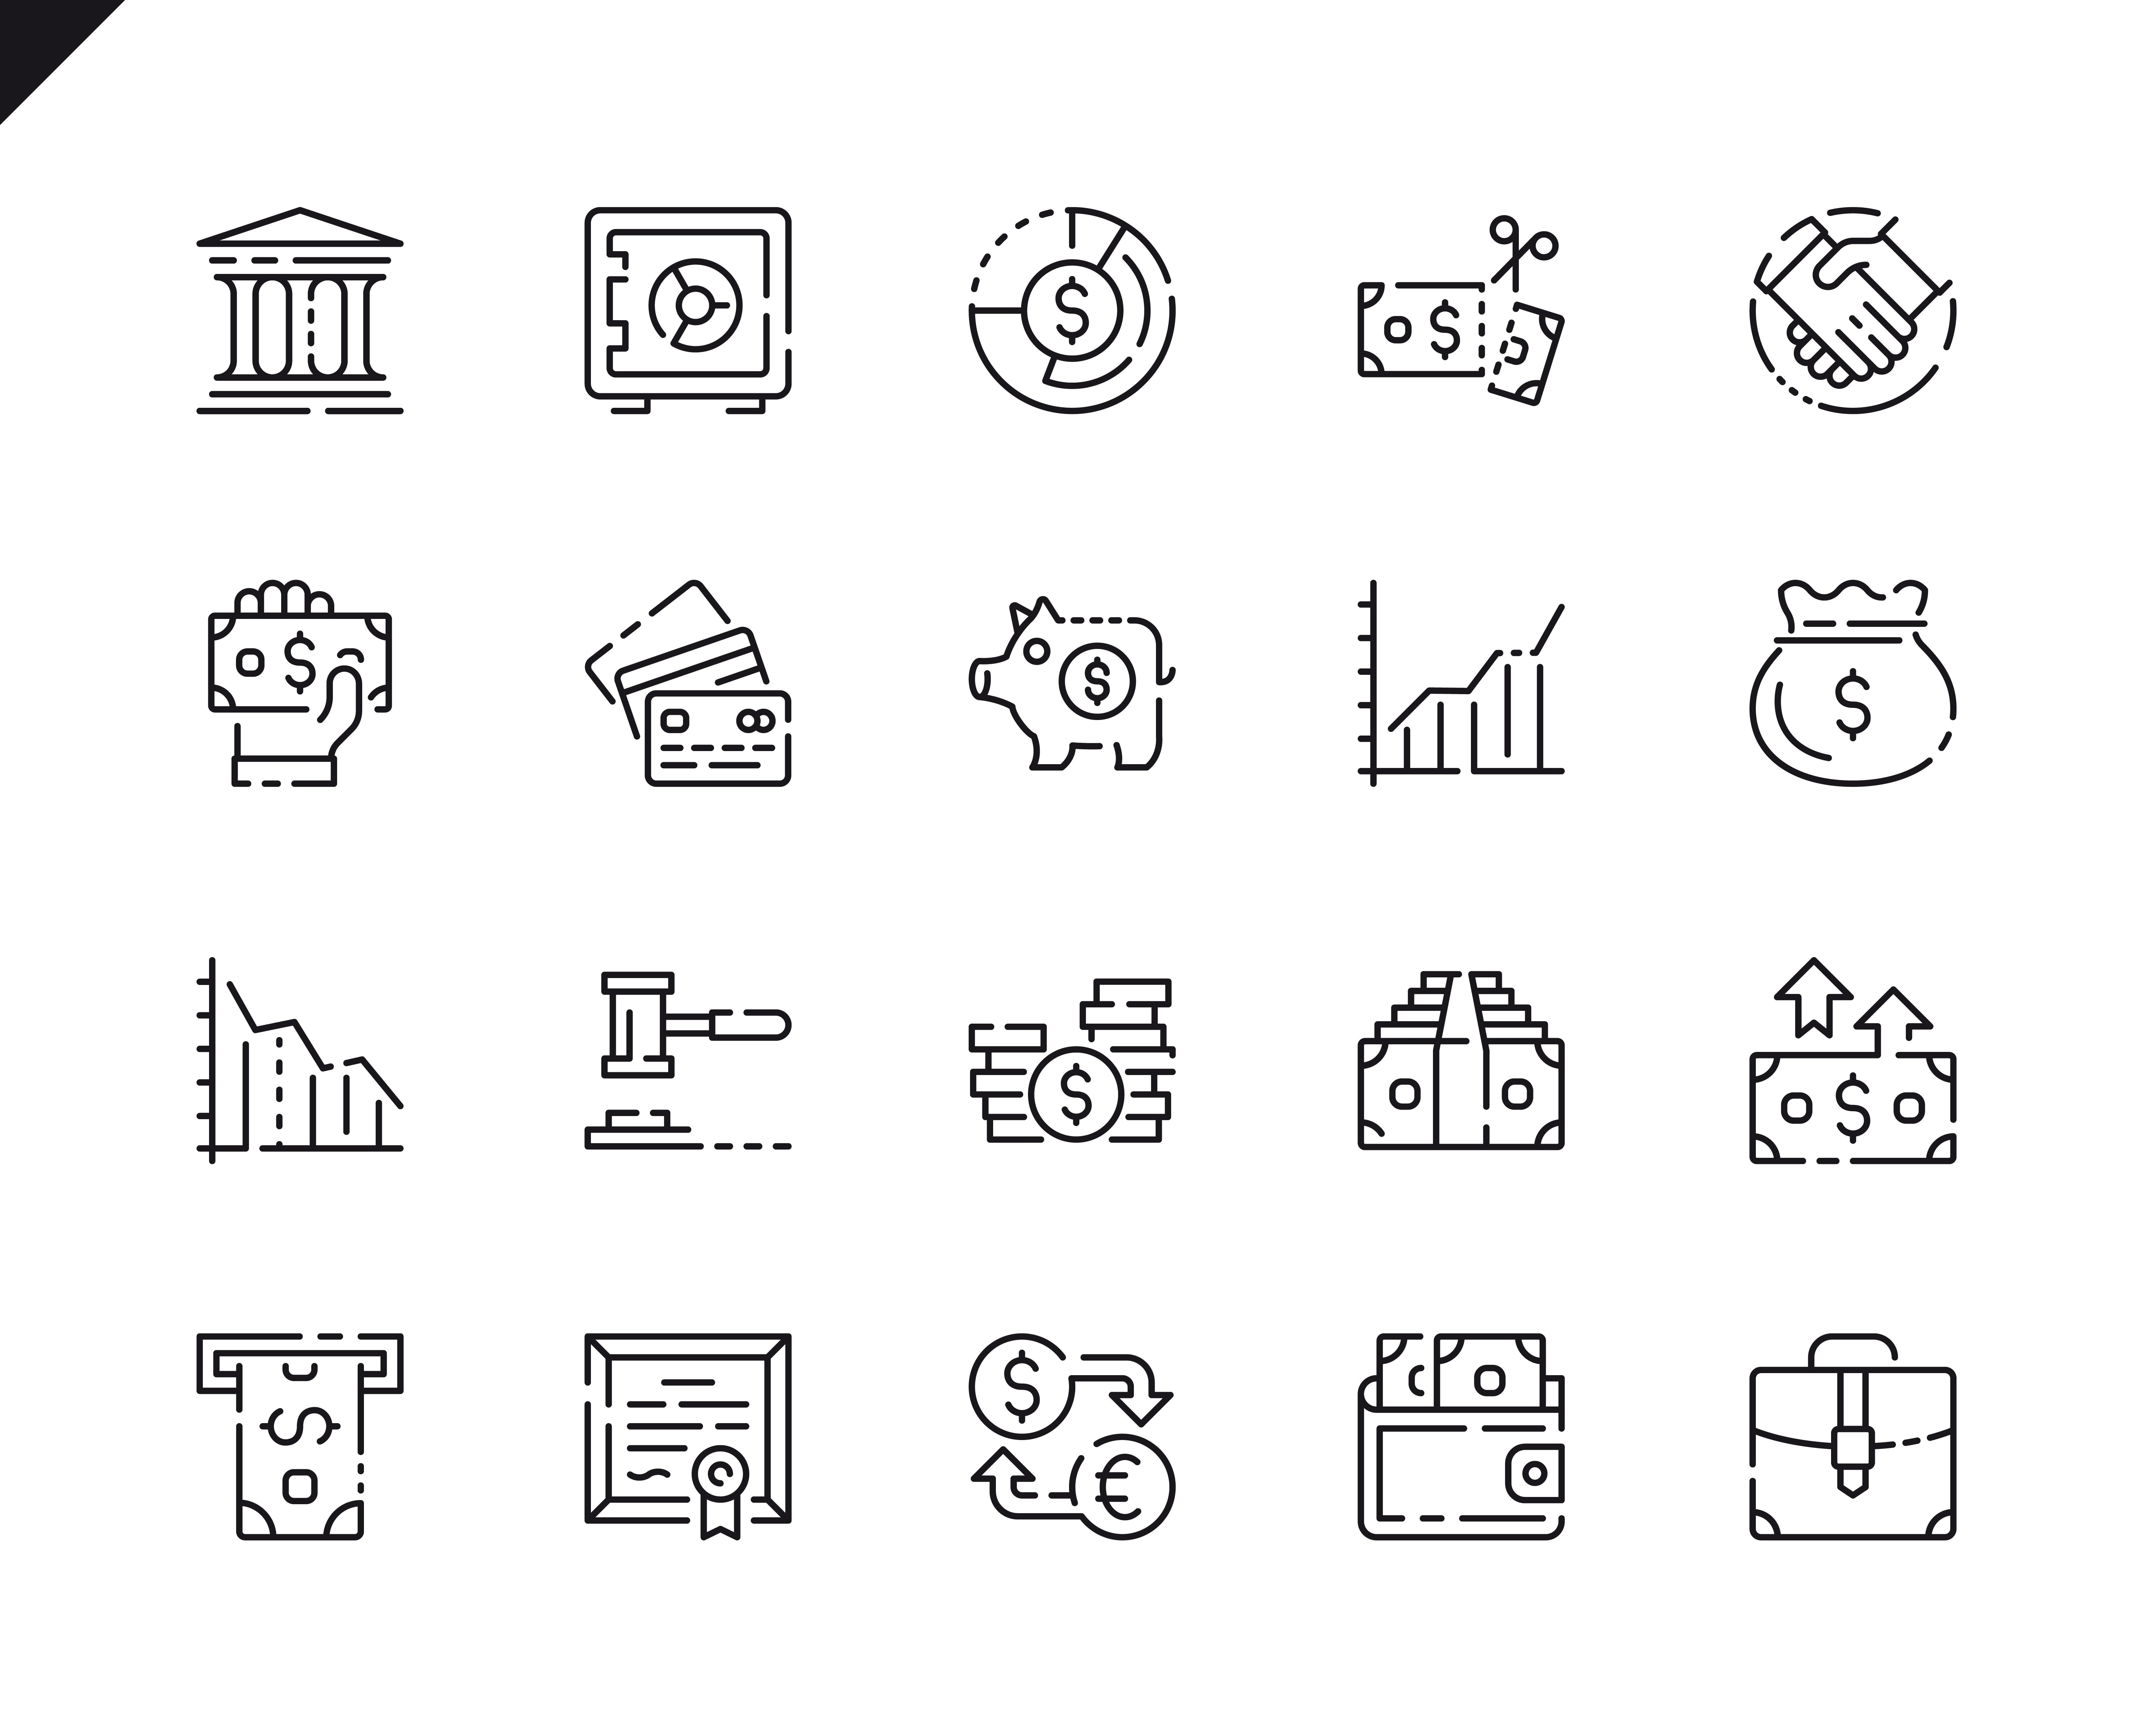 500 Business Line Icons - $22 ONLY - 3 5